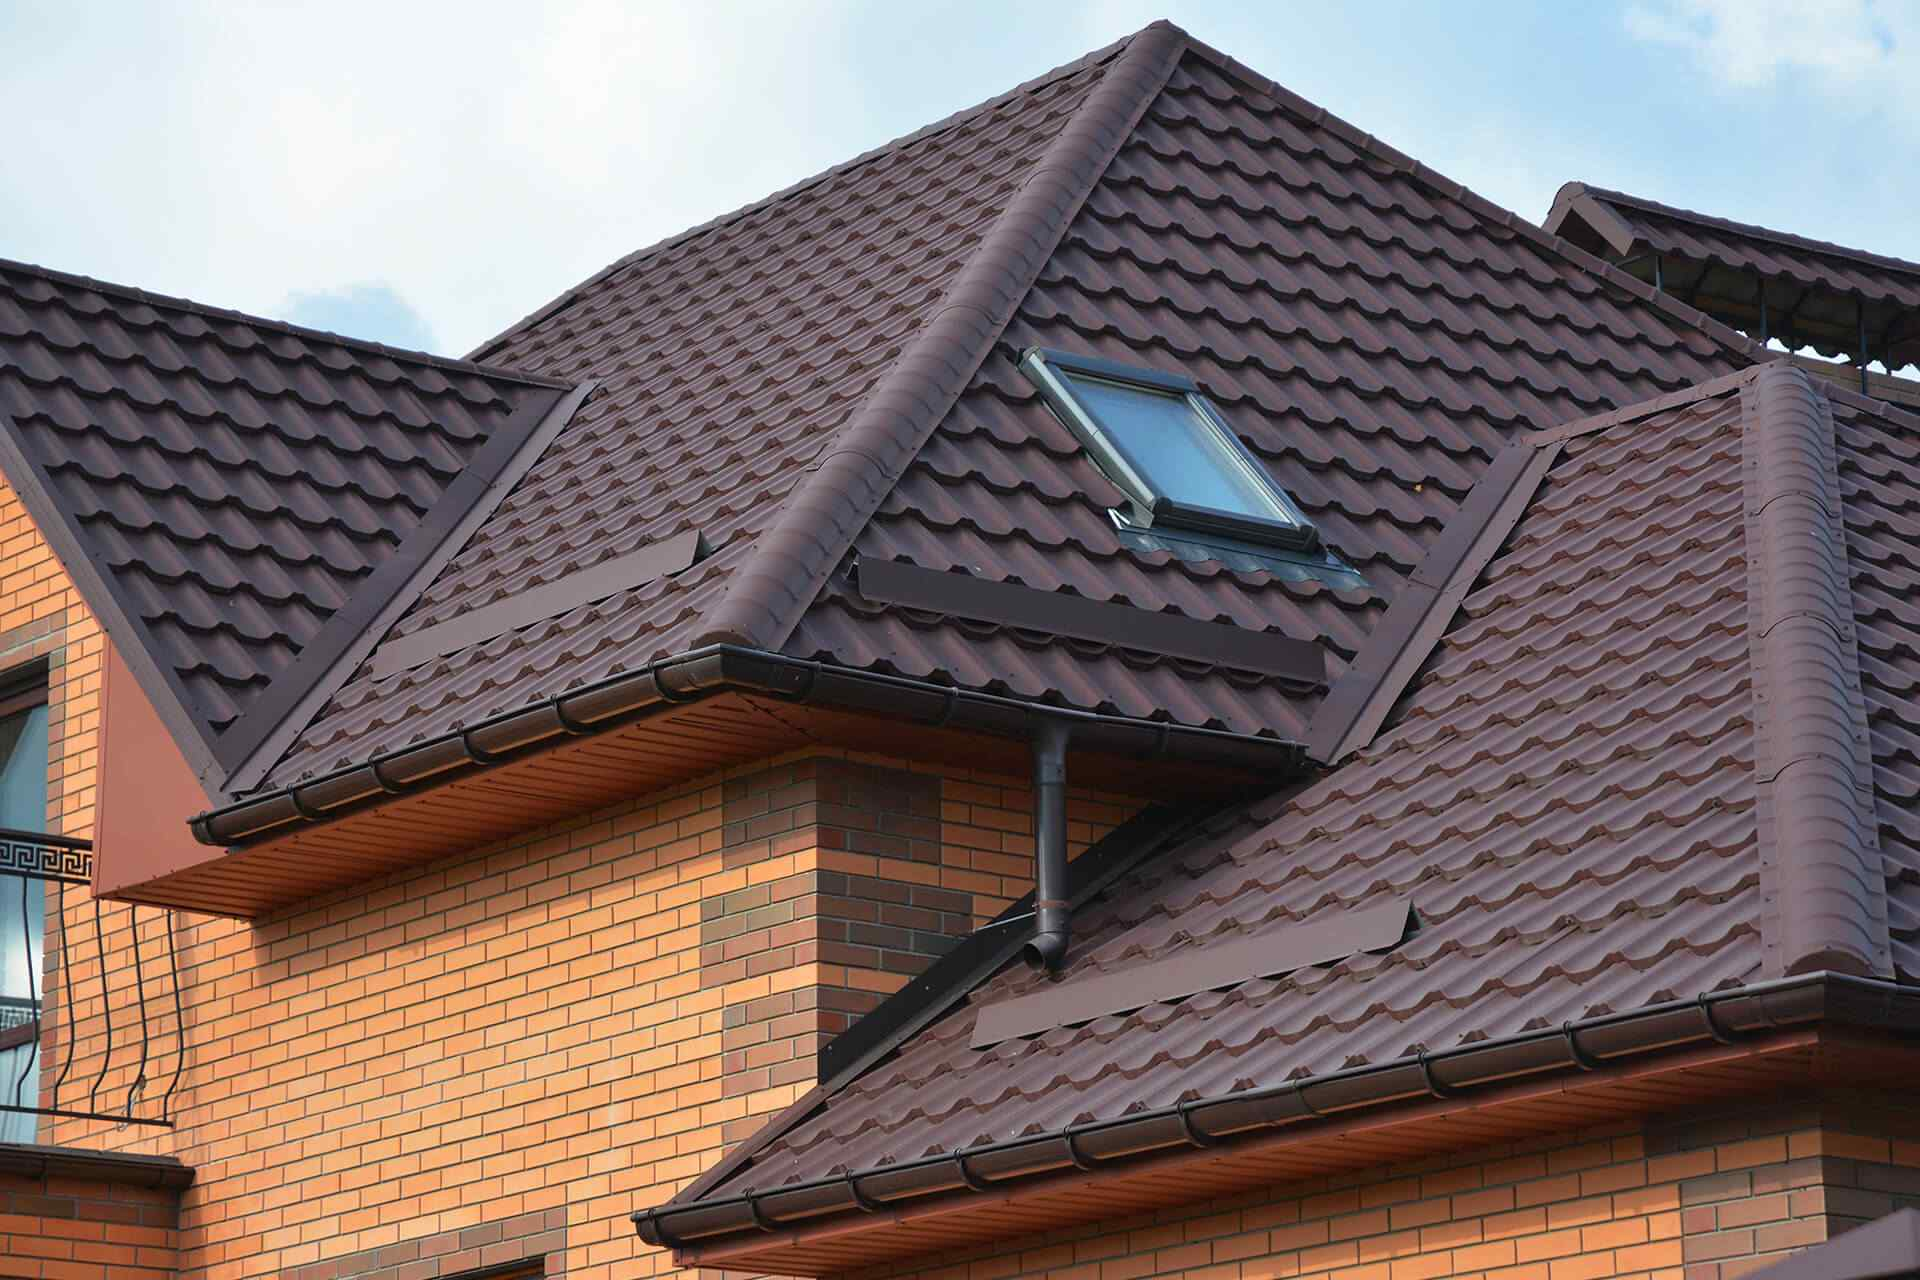 https://sheridanroofing.com/wp-content/uploads/2018/10/gallery_projects_13.jpg